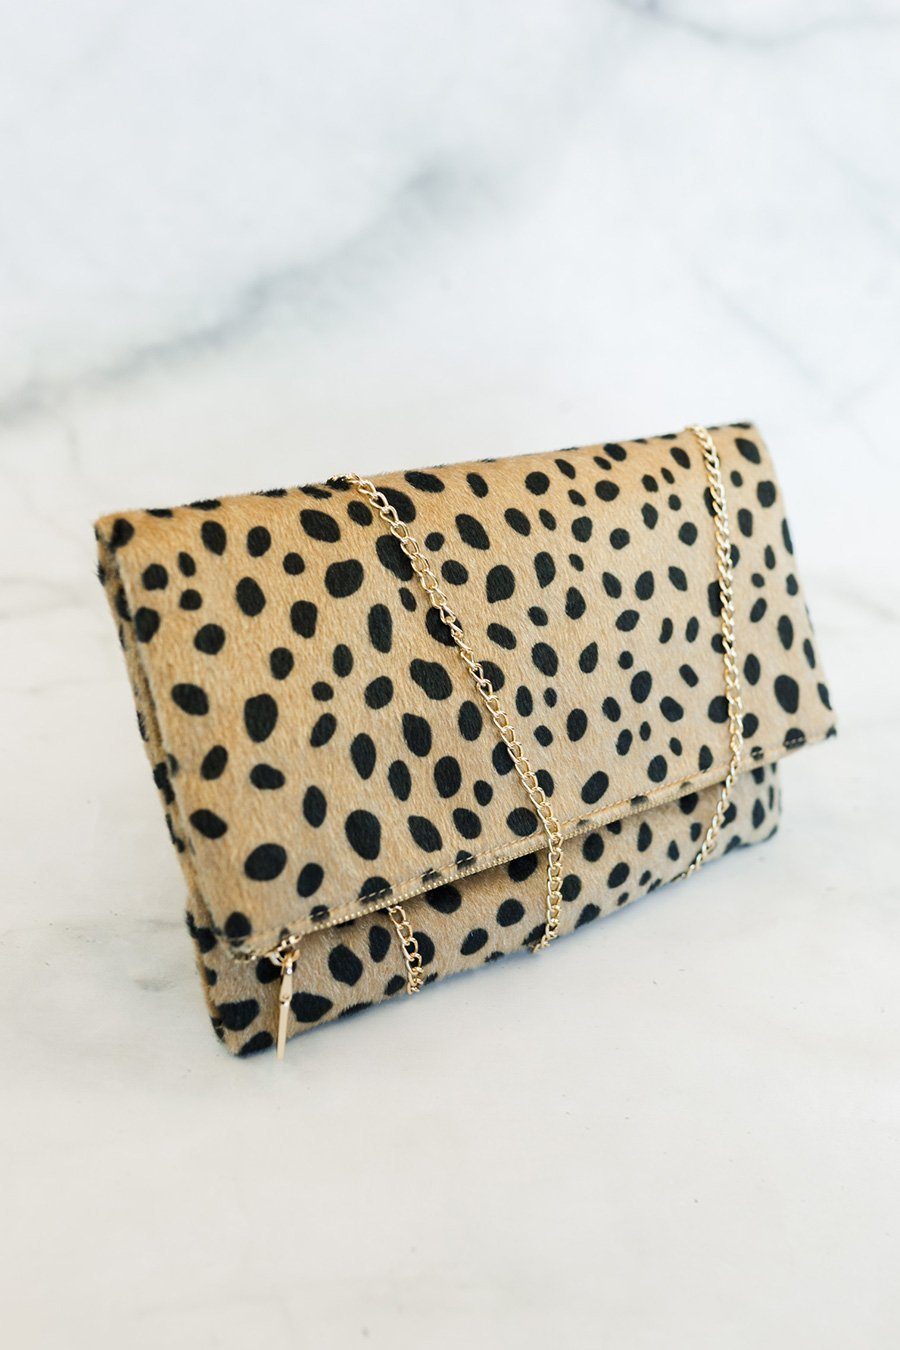 The Ready for the Party Clutch